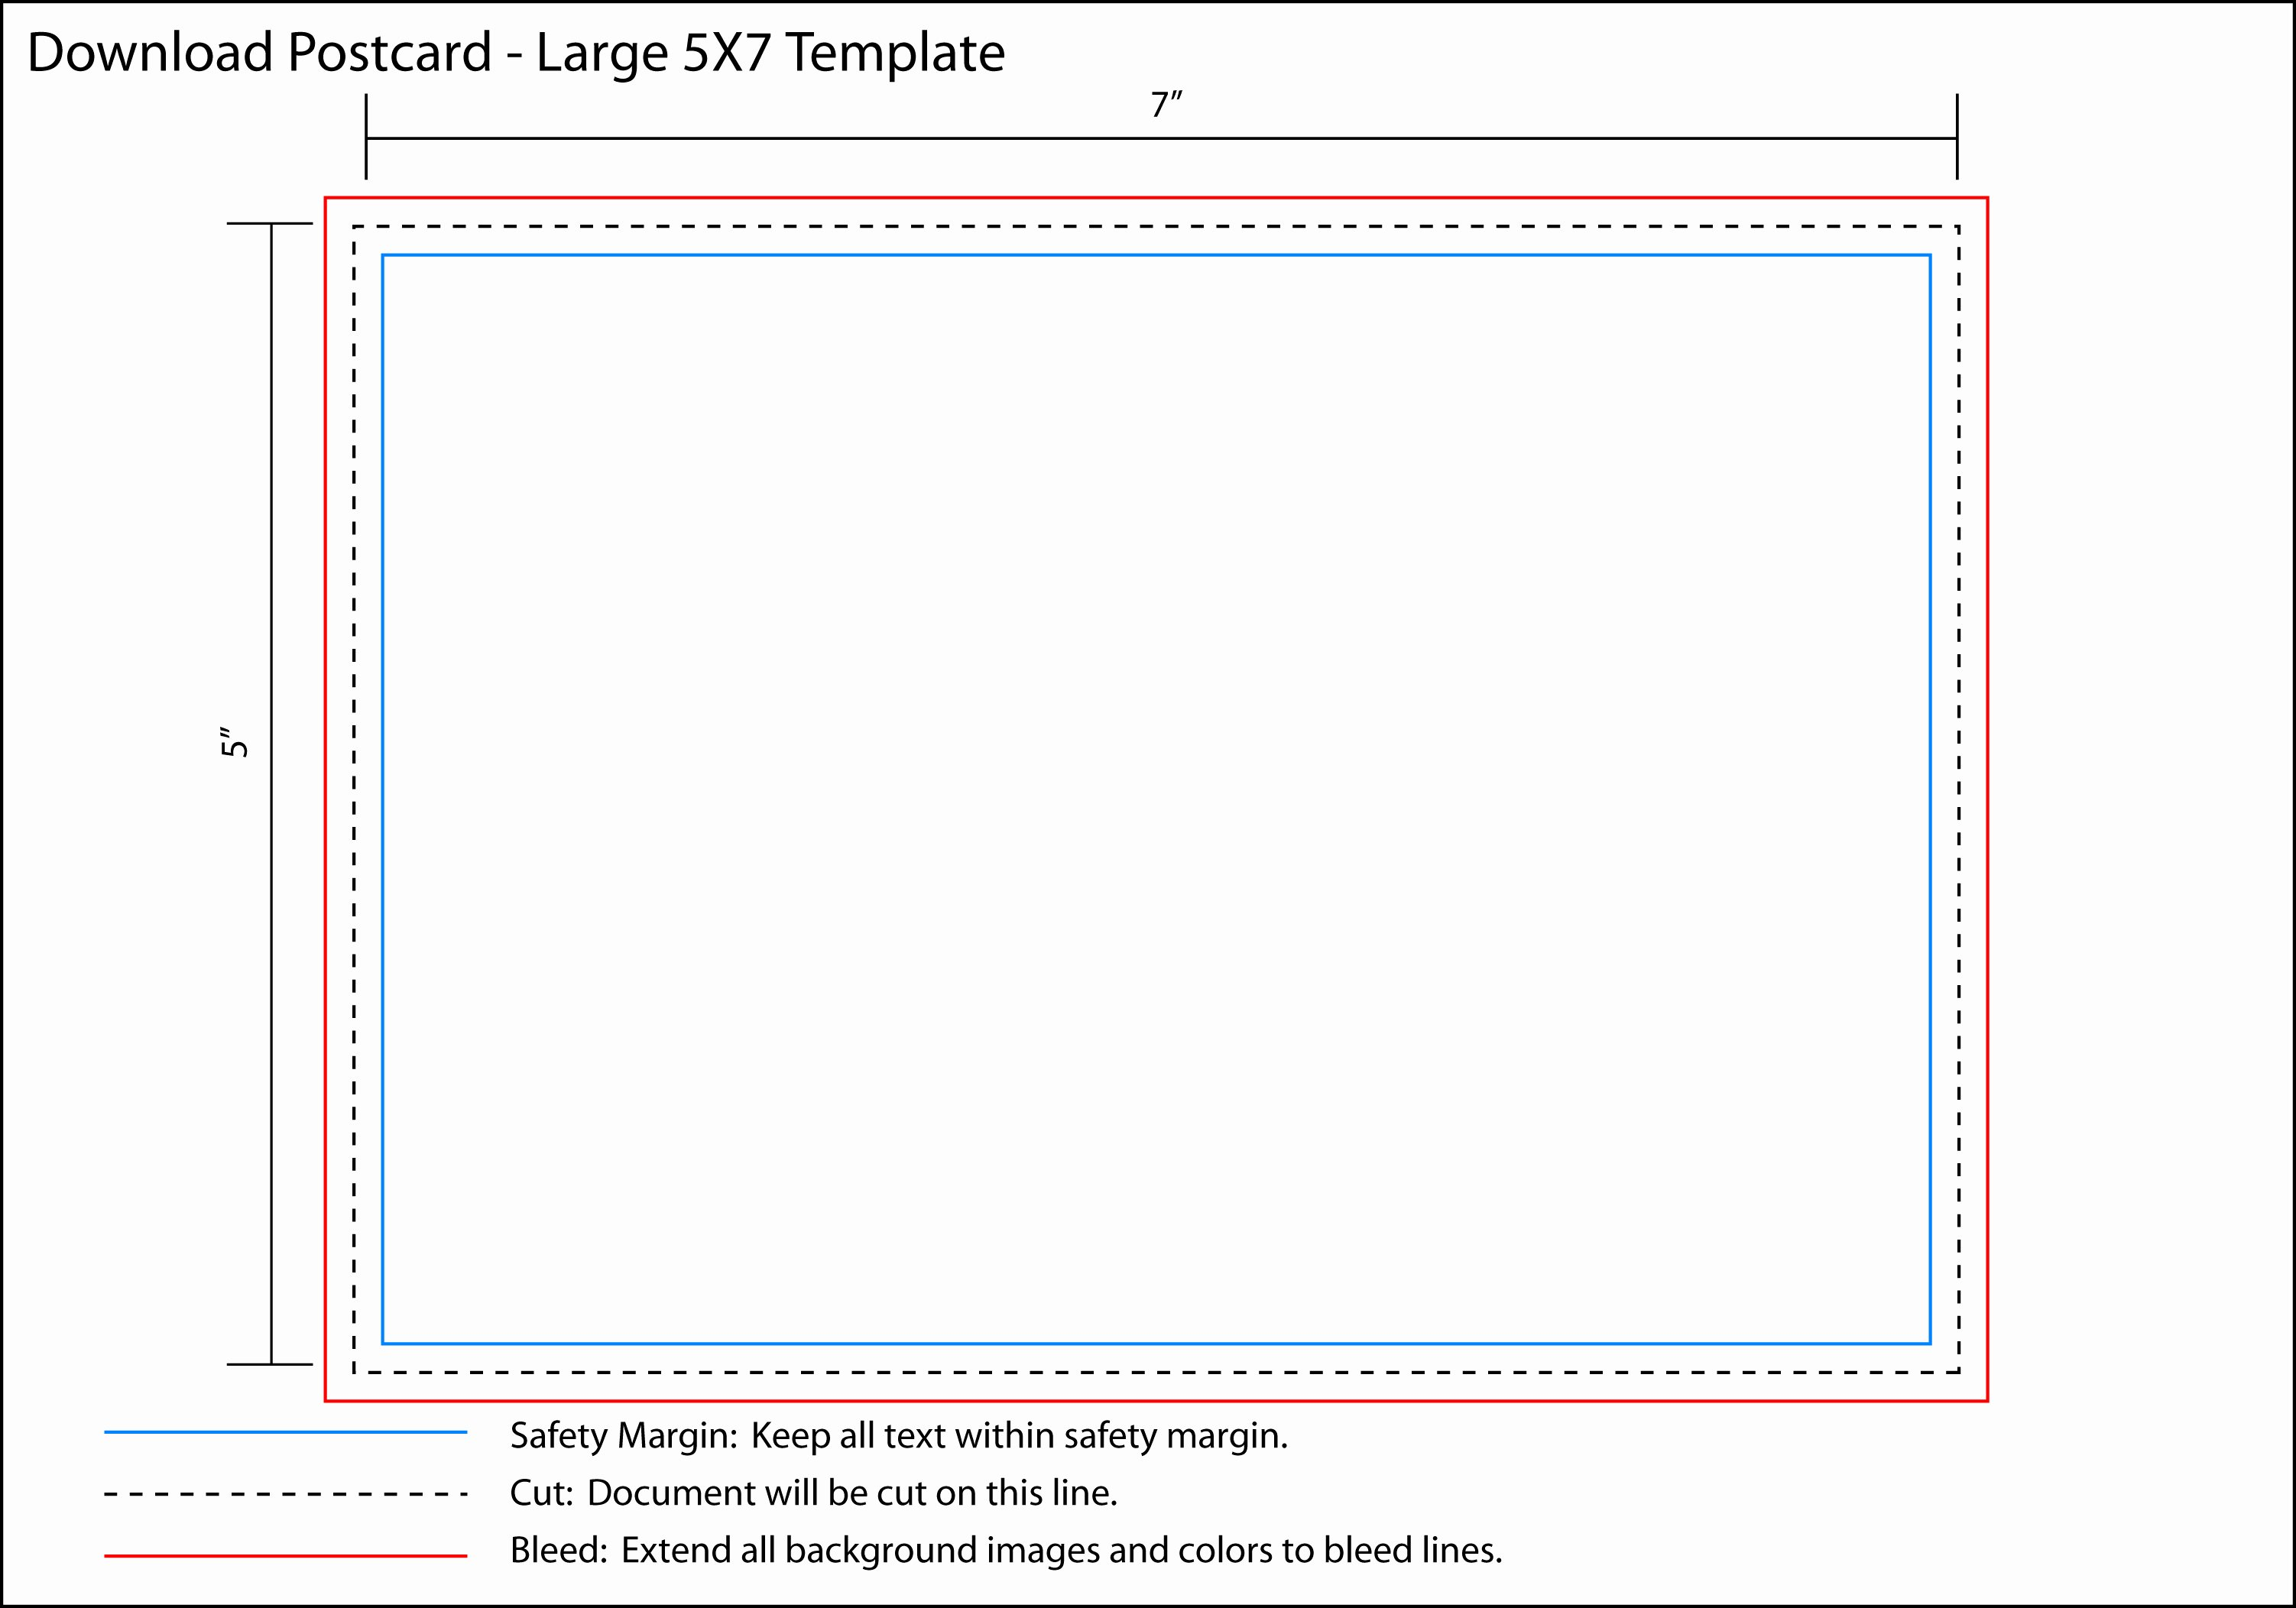 5x7 Postcard Template Photoshop Lovely Superdups Cd & Dvd Duplication and Replication and More